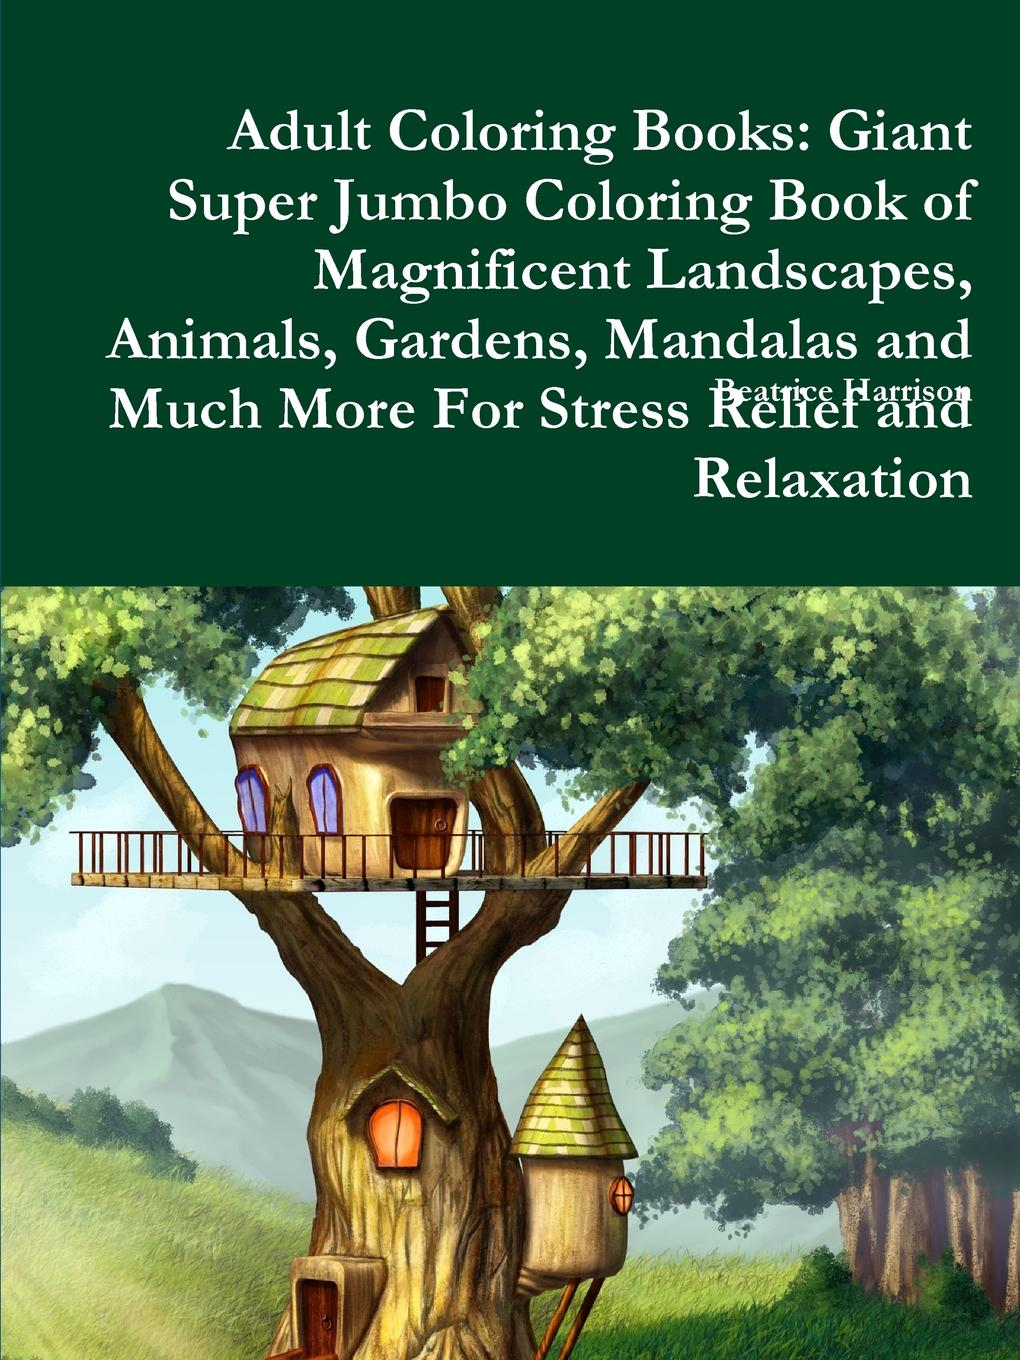 Beatrice Harrison Adult Coloring Books. Giant Super Jumbo Coloring Book of Magnificent Landscapes, Animals, Gardens, Mandalas and Much More For Stress Relief and Relaxation marion harney gardens and landscapes in historic building conservation